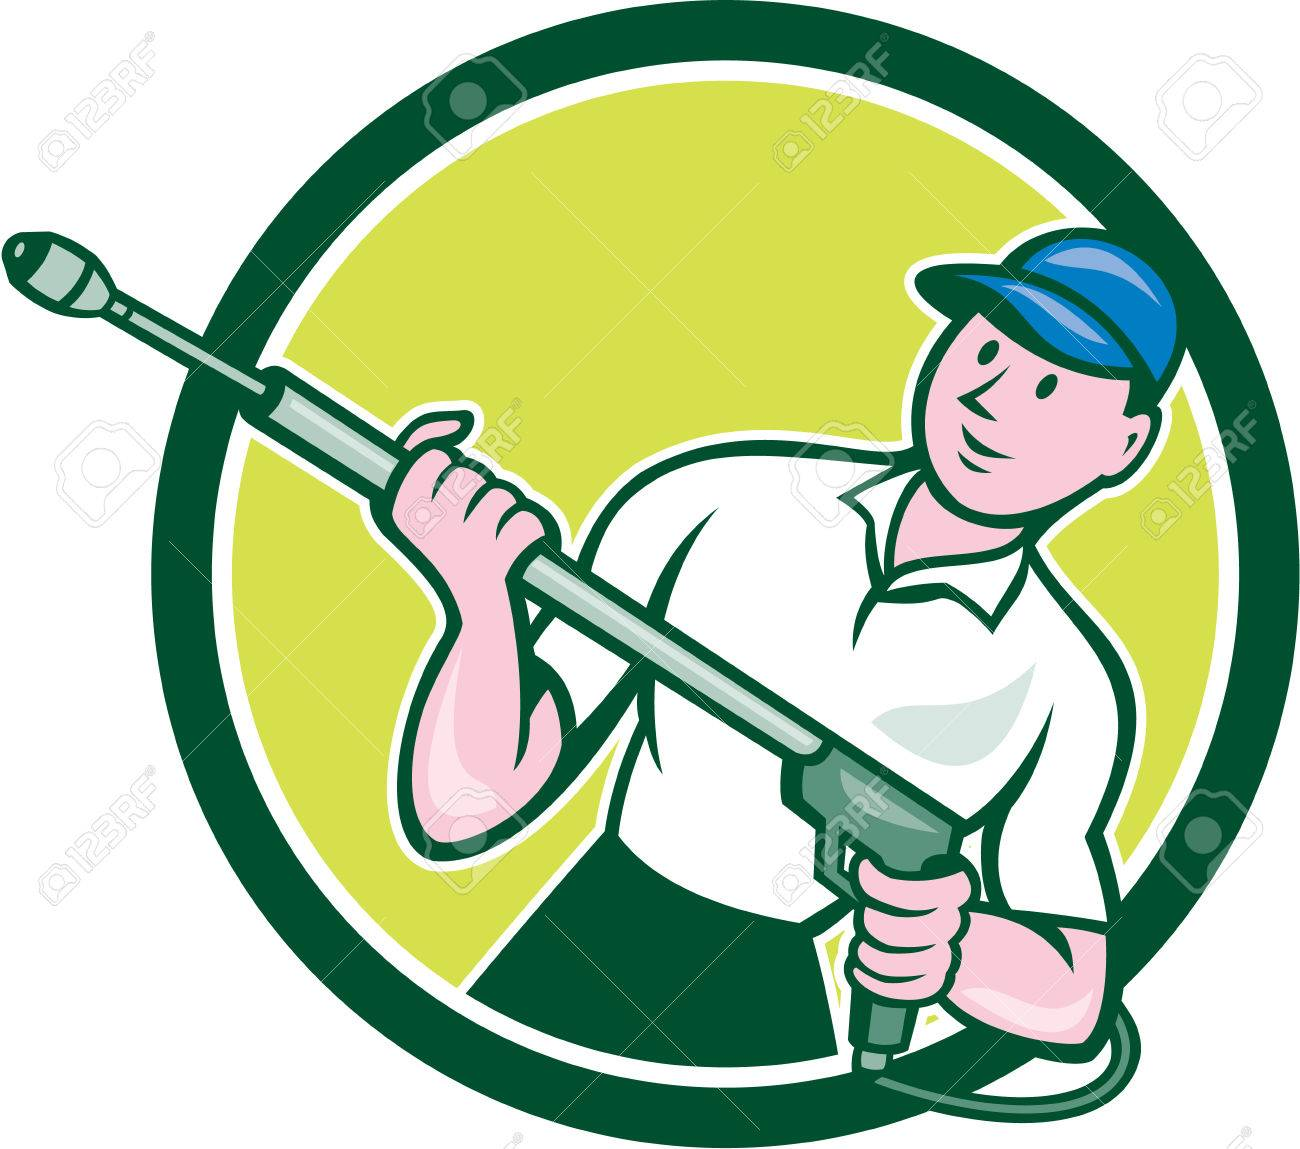 Illustration of a male pressure washing cleaner worker holding a water blaster viewed from front set inside circle shape on isolated background done in cartoon style. - 34617337